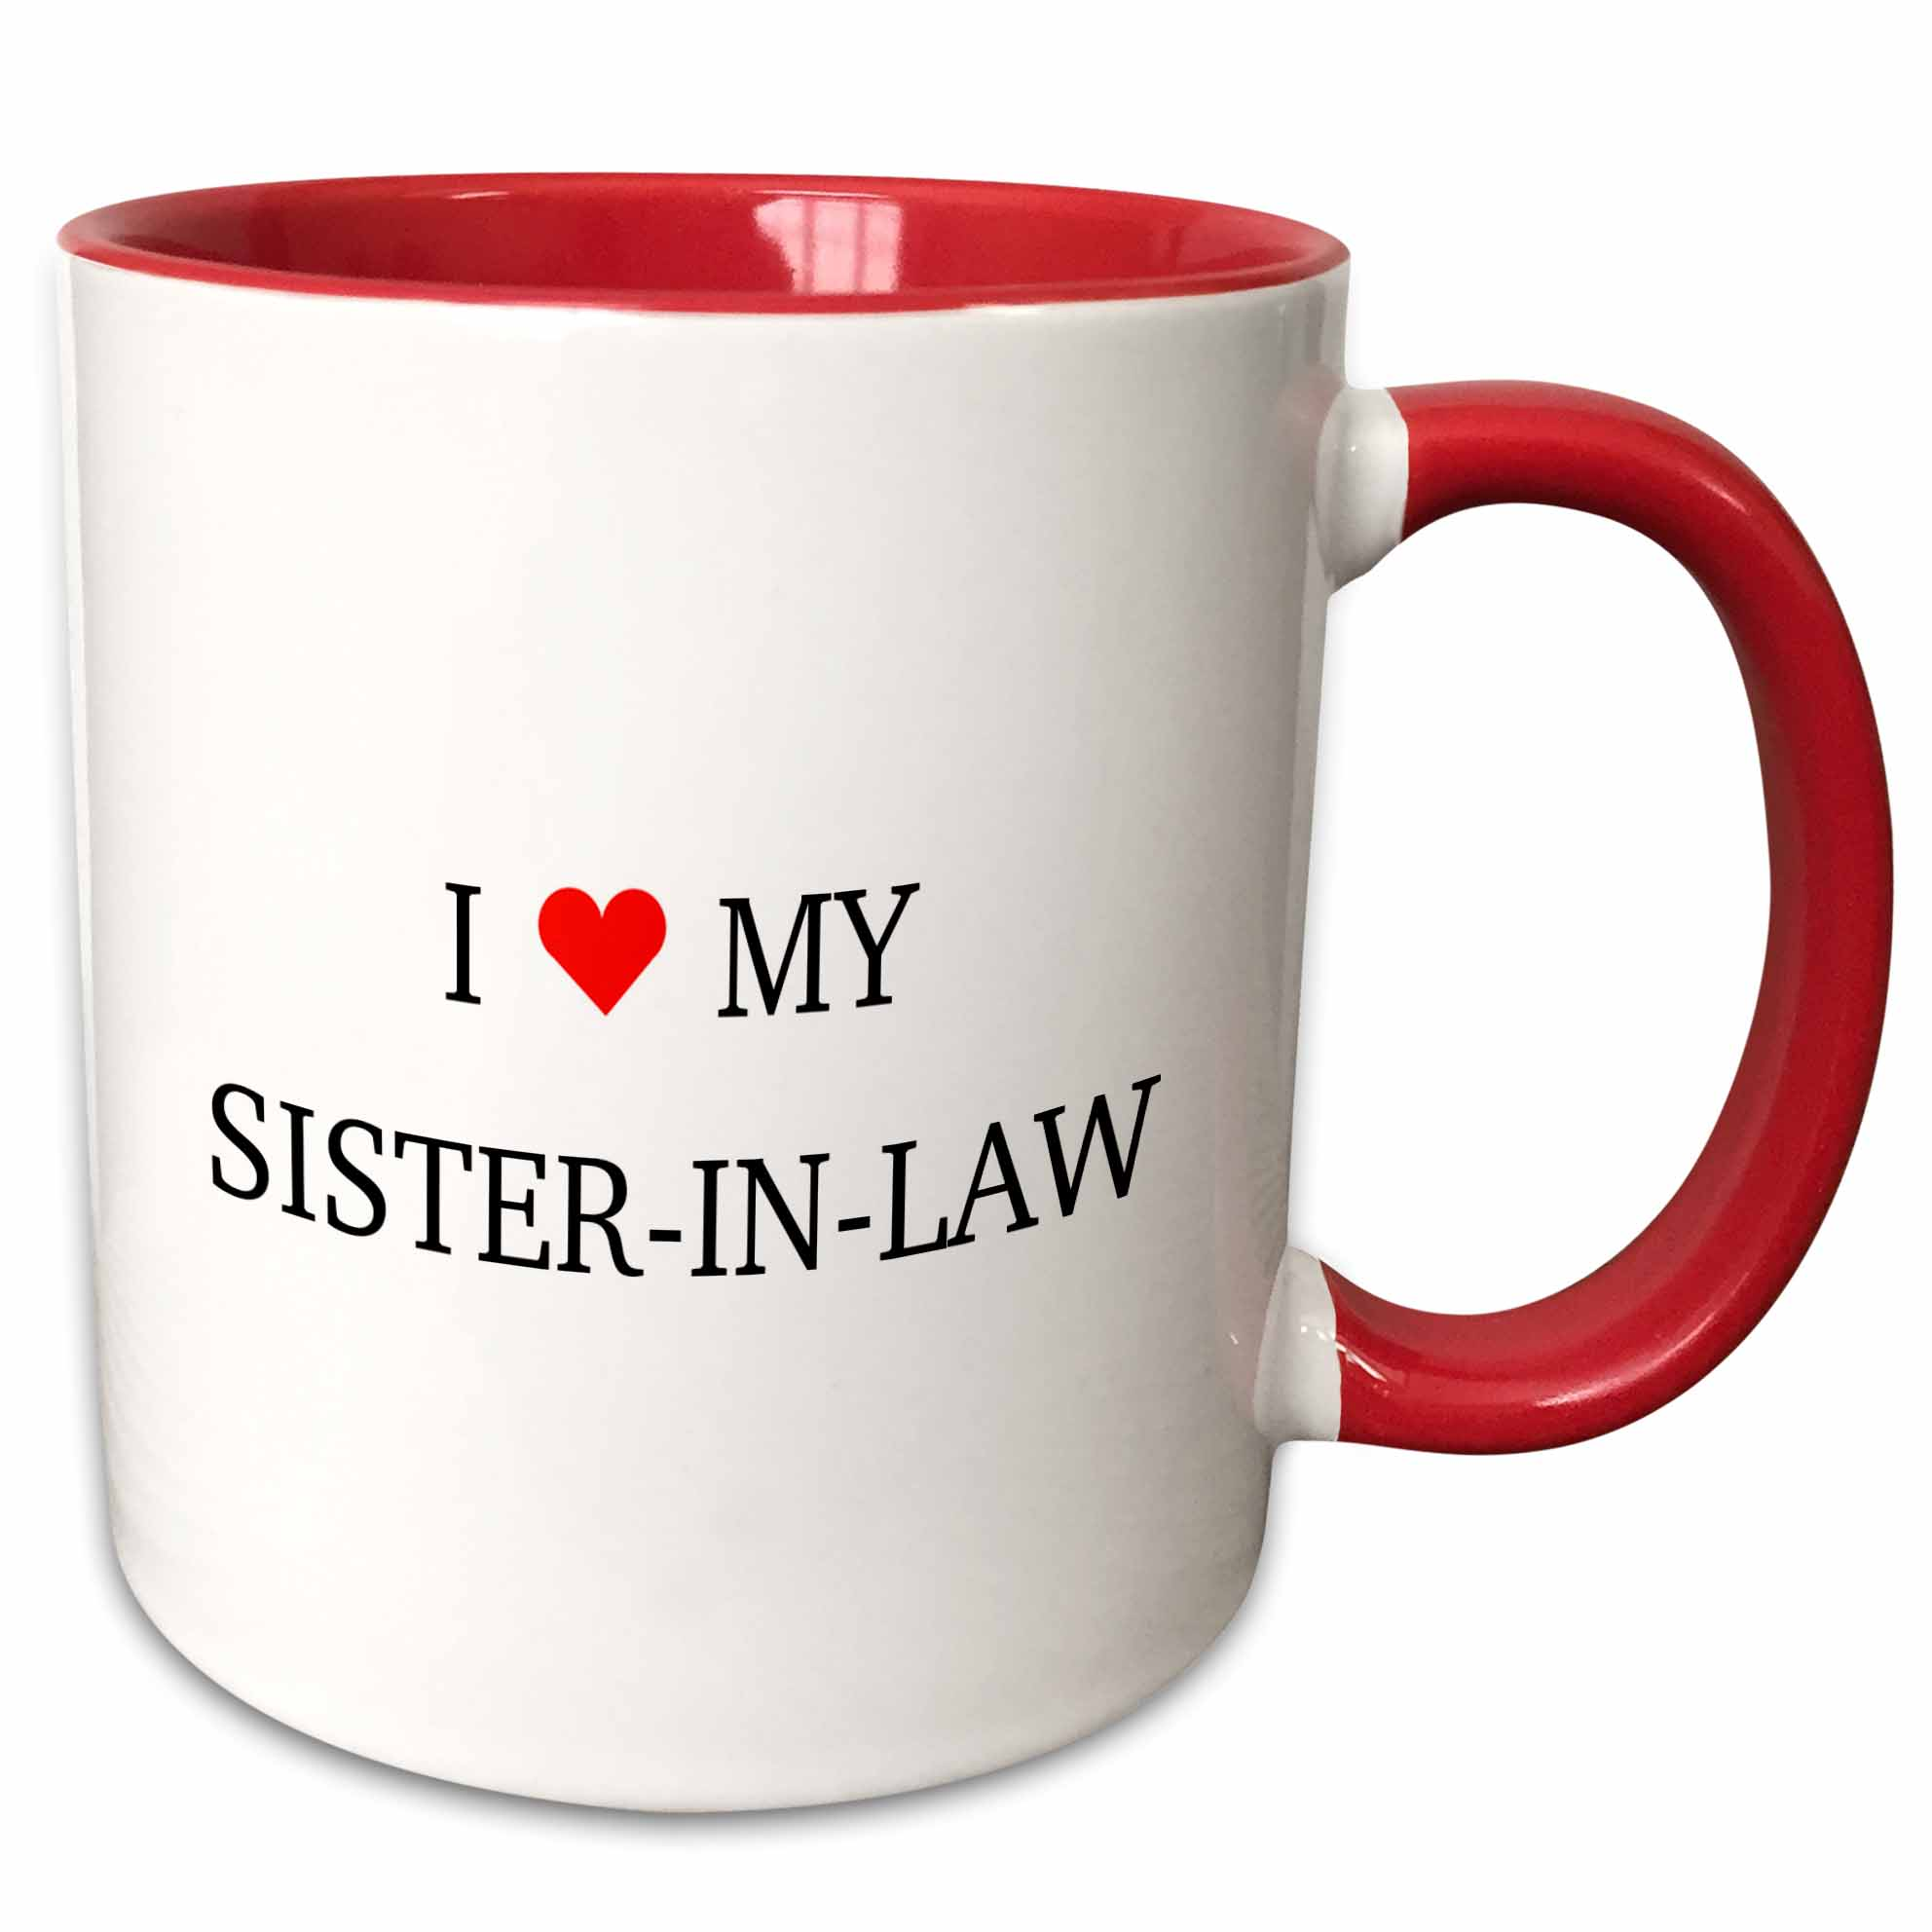 3dRose I HEART MY SISTER IN LAW - Two Tone Red Mug, 11-ounce